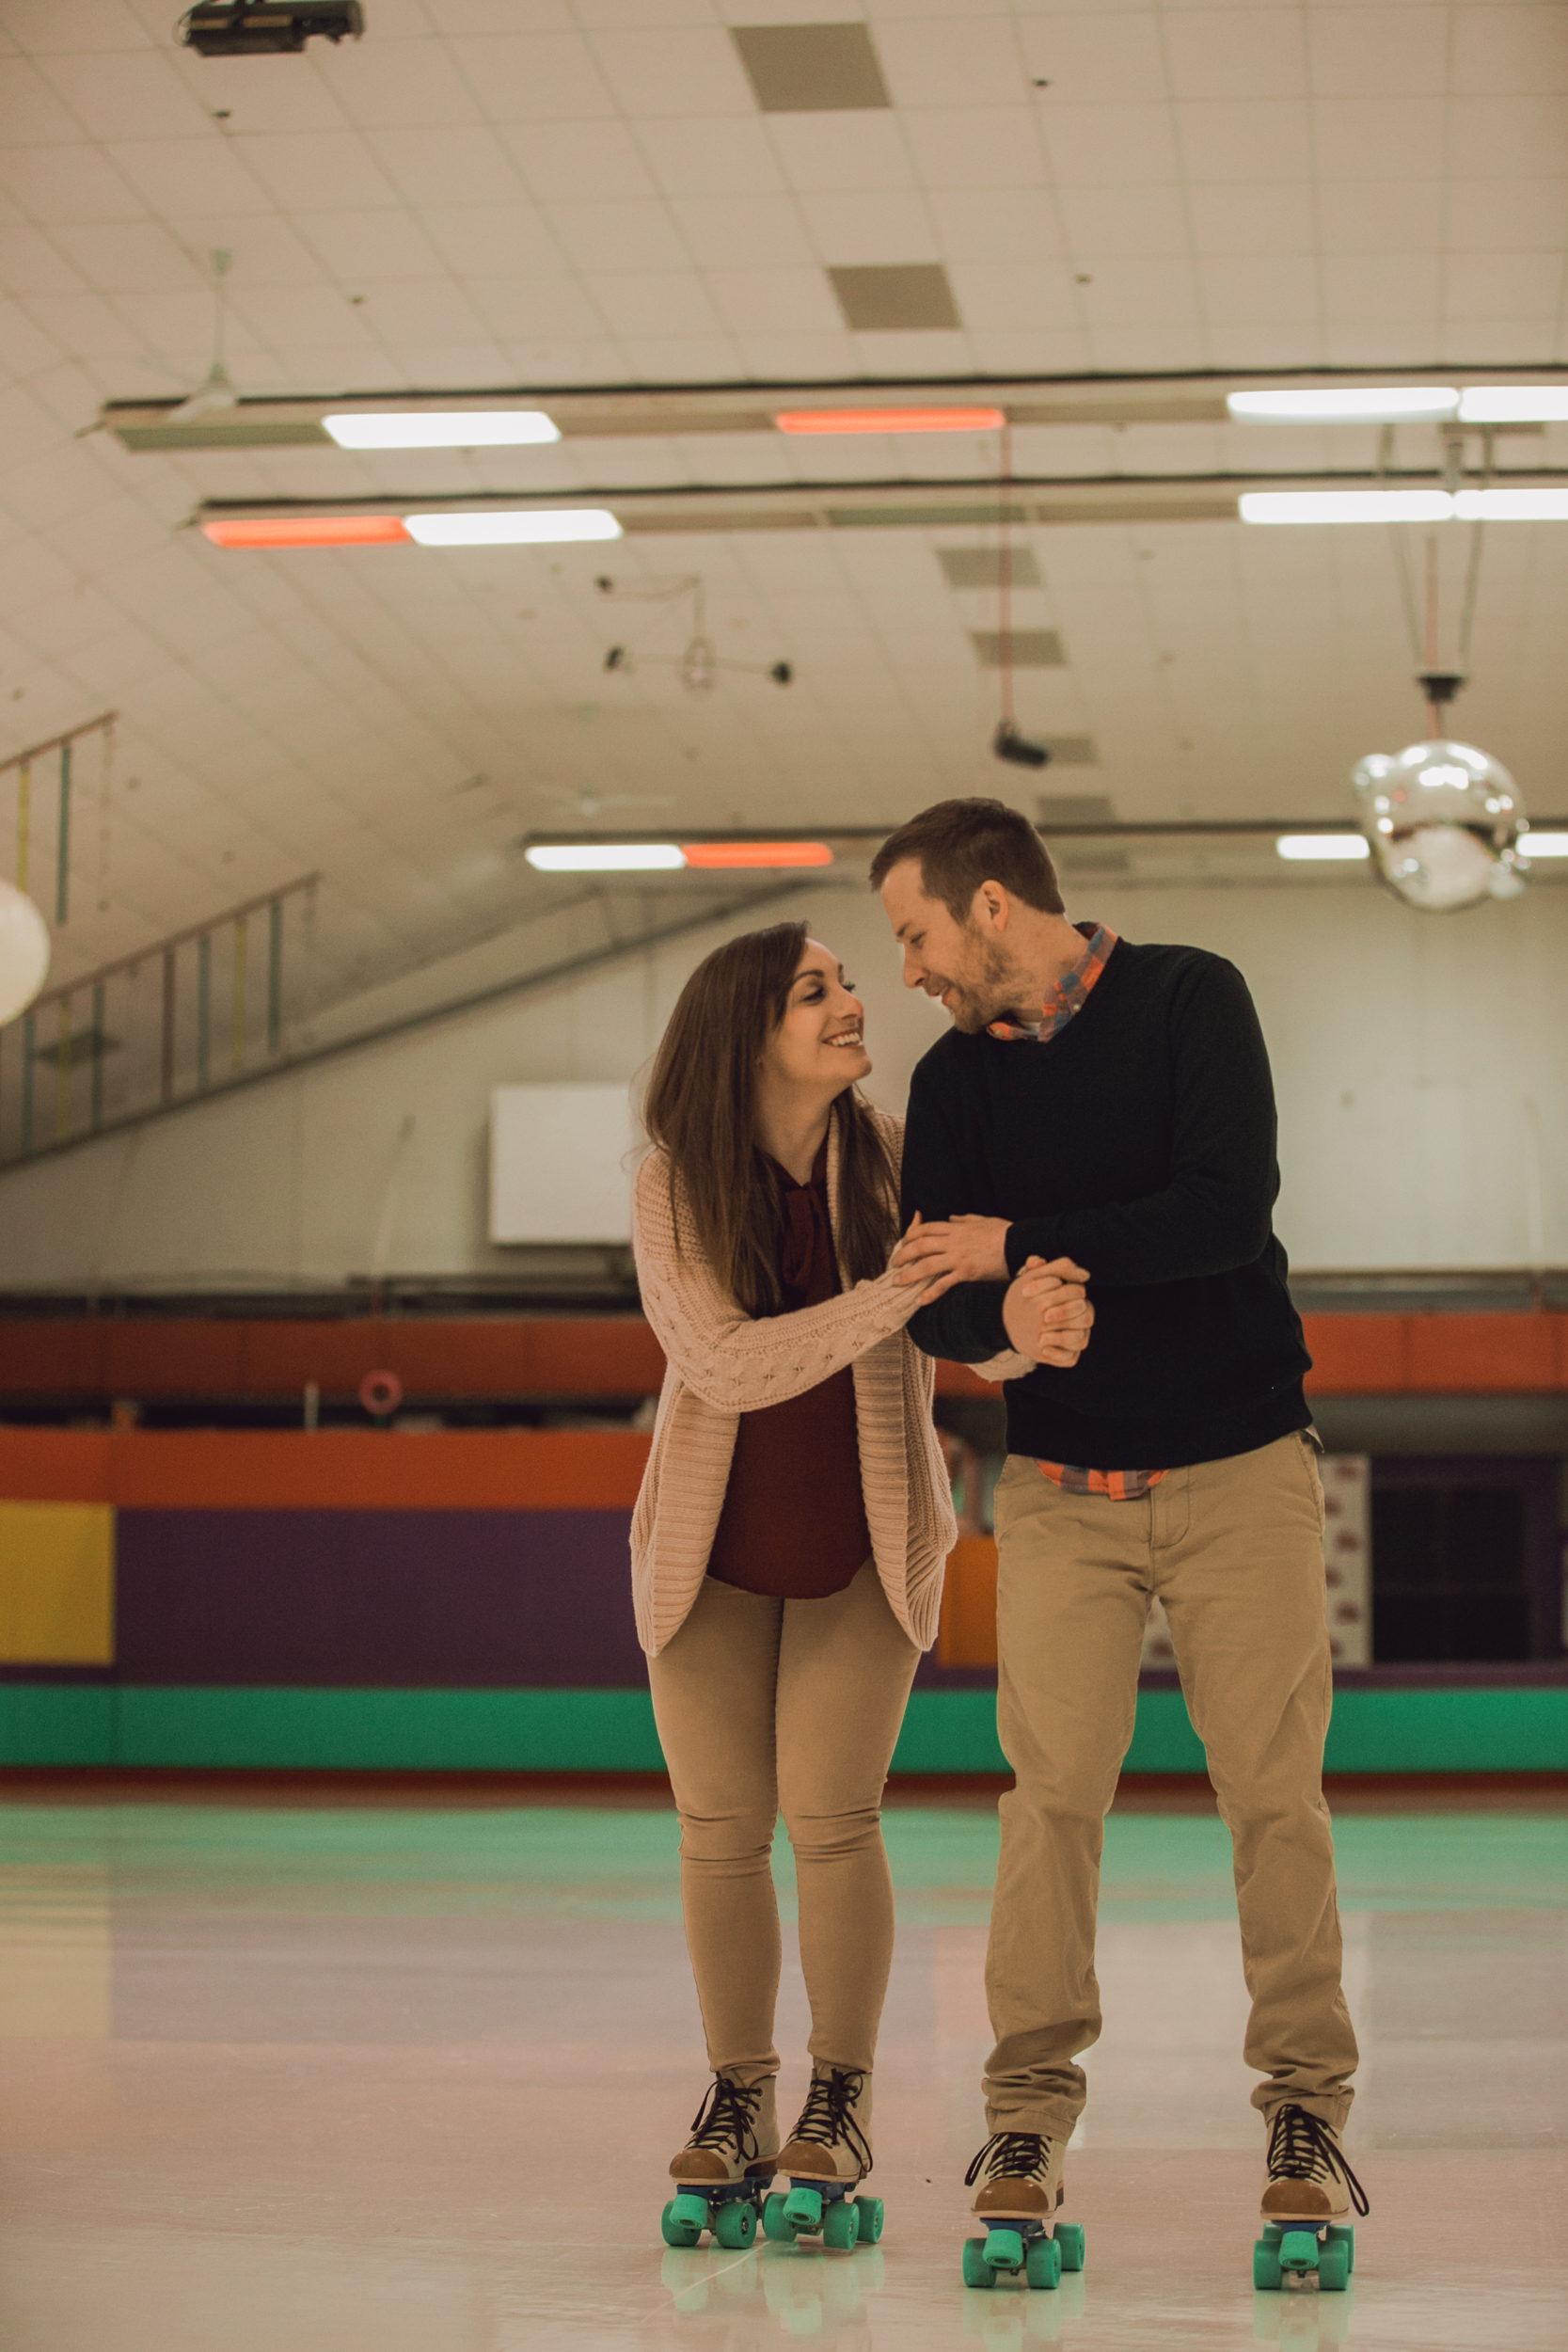 roller rink engagement session, wooddale fun zone engagement session, roller skate engagement session, minneapolis cafe lucrat engagment session, cafe lucrat engagement session, minneapolis minnesota engagement session-www.rachelsmak.com12.jpg